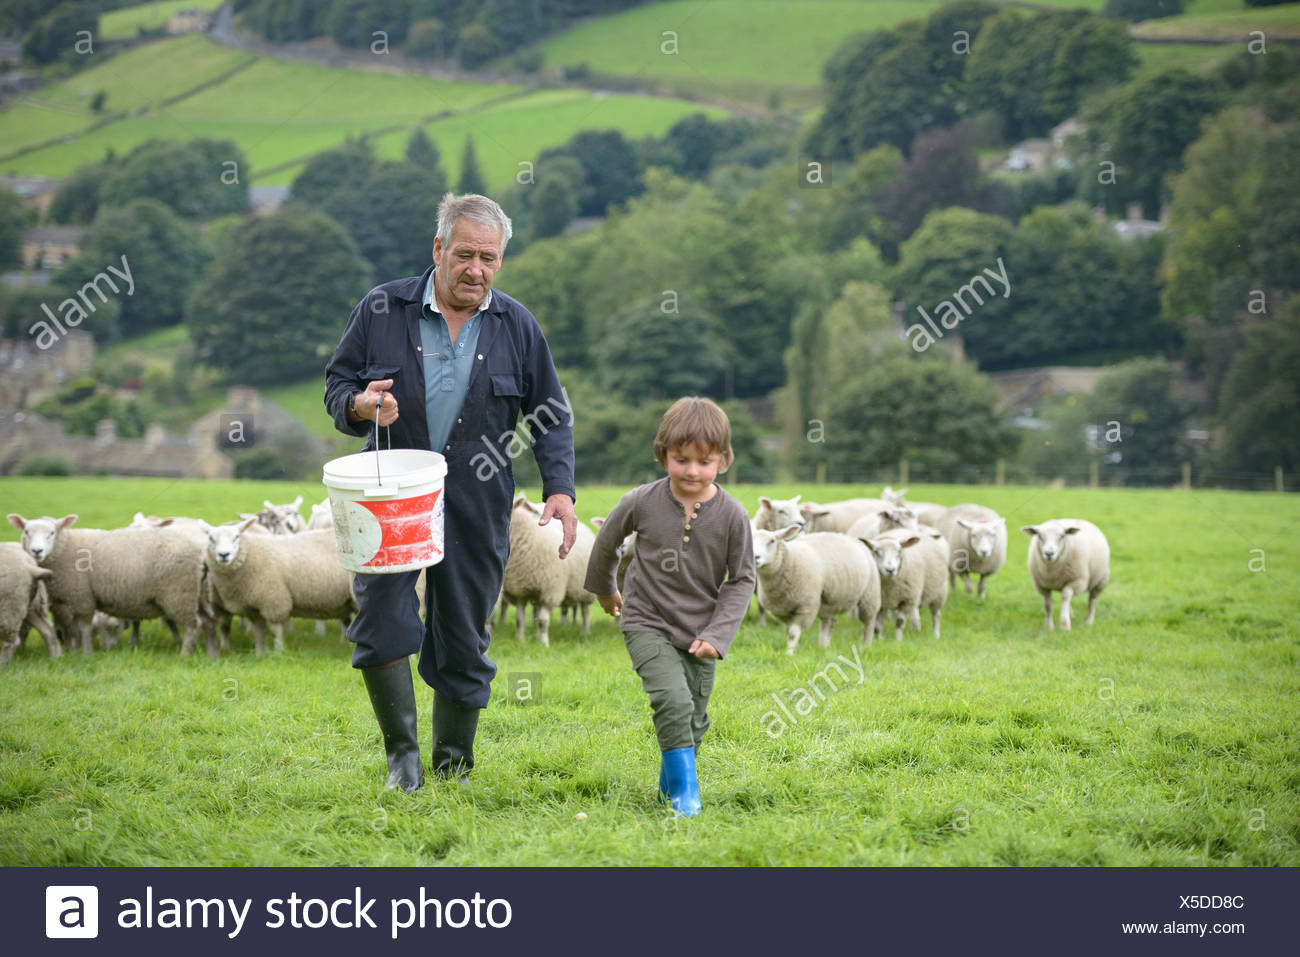 Mature farmer and grandson feeding sheep in field - Stock Image